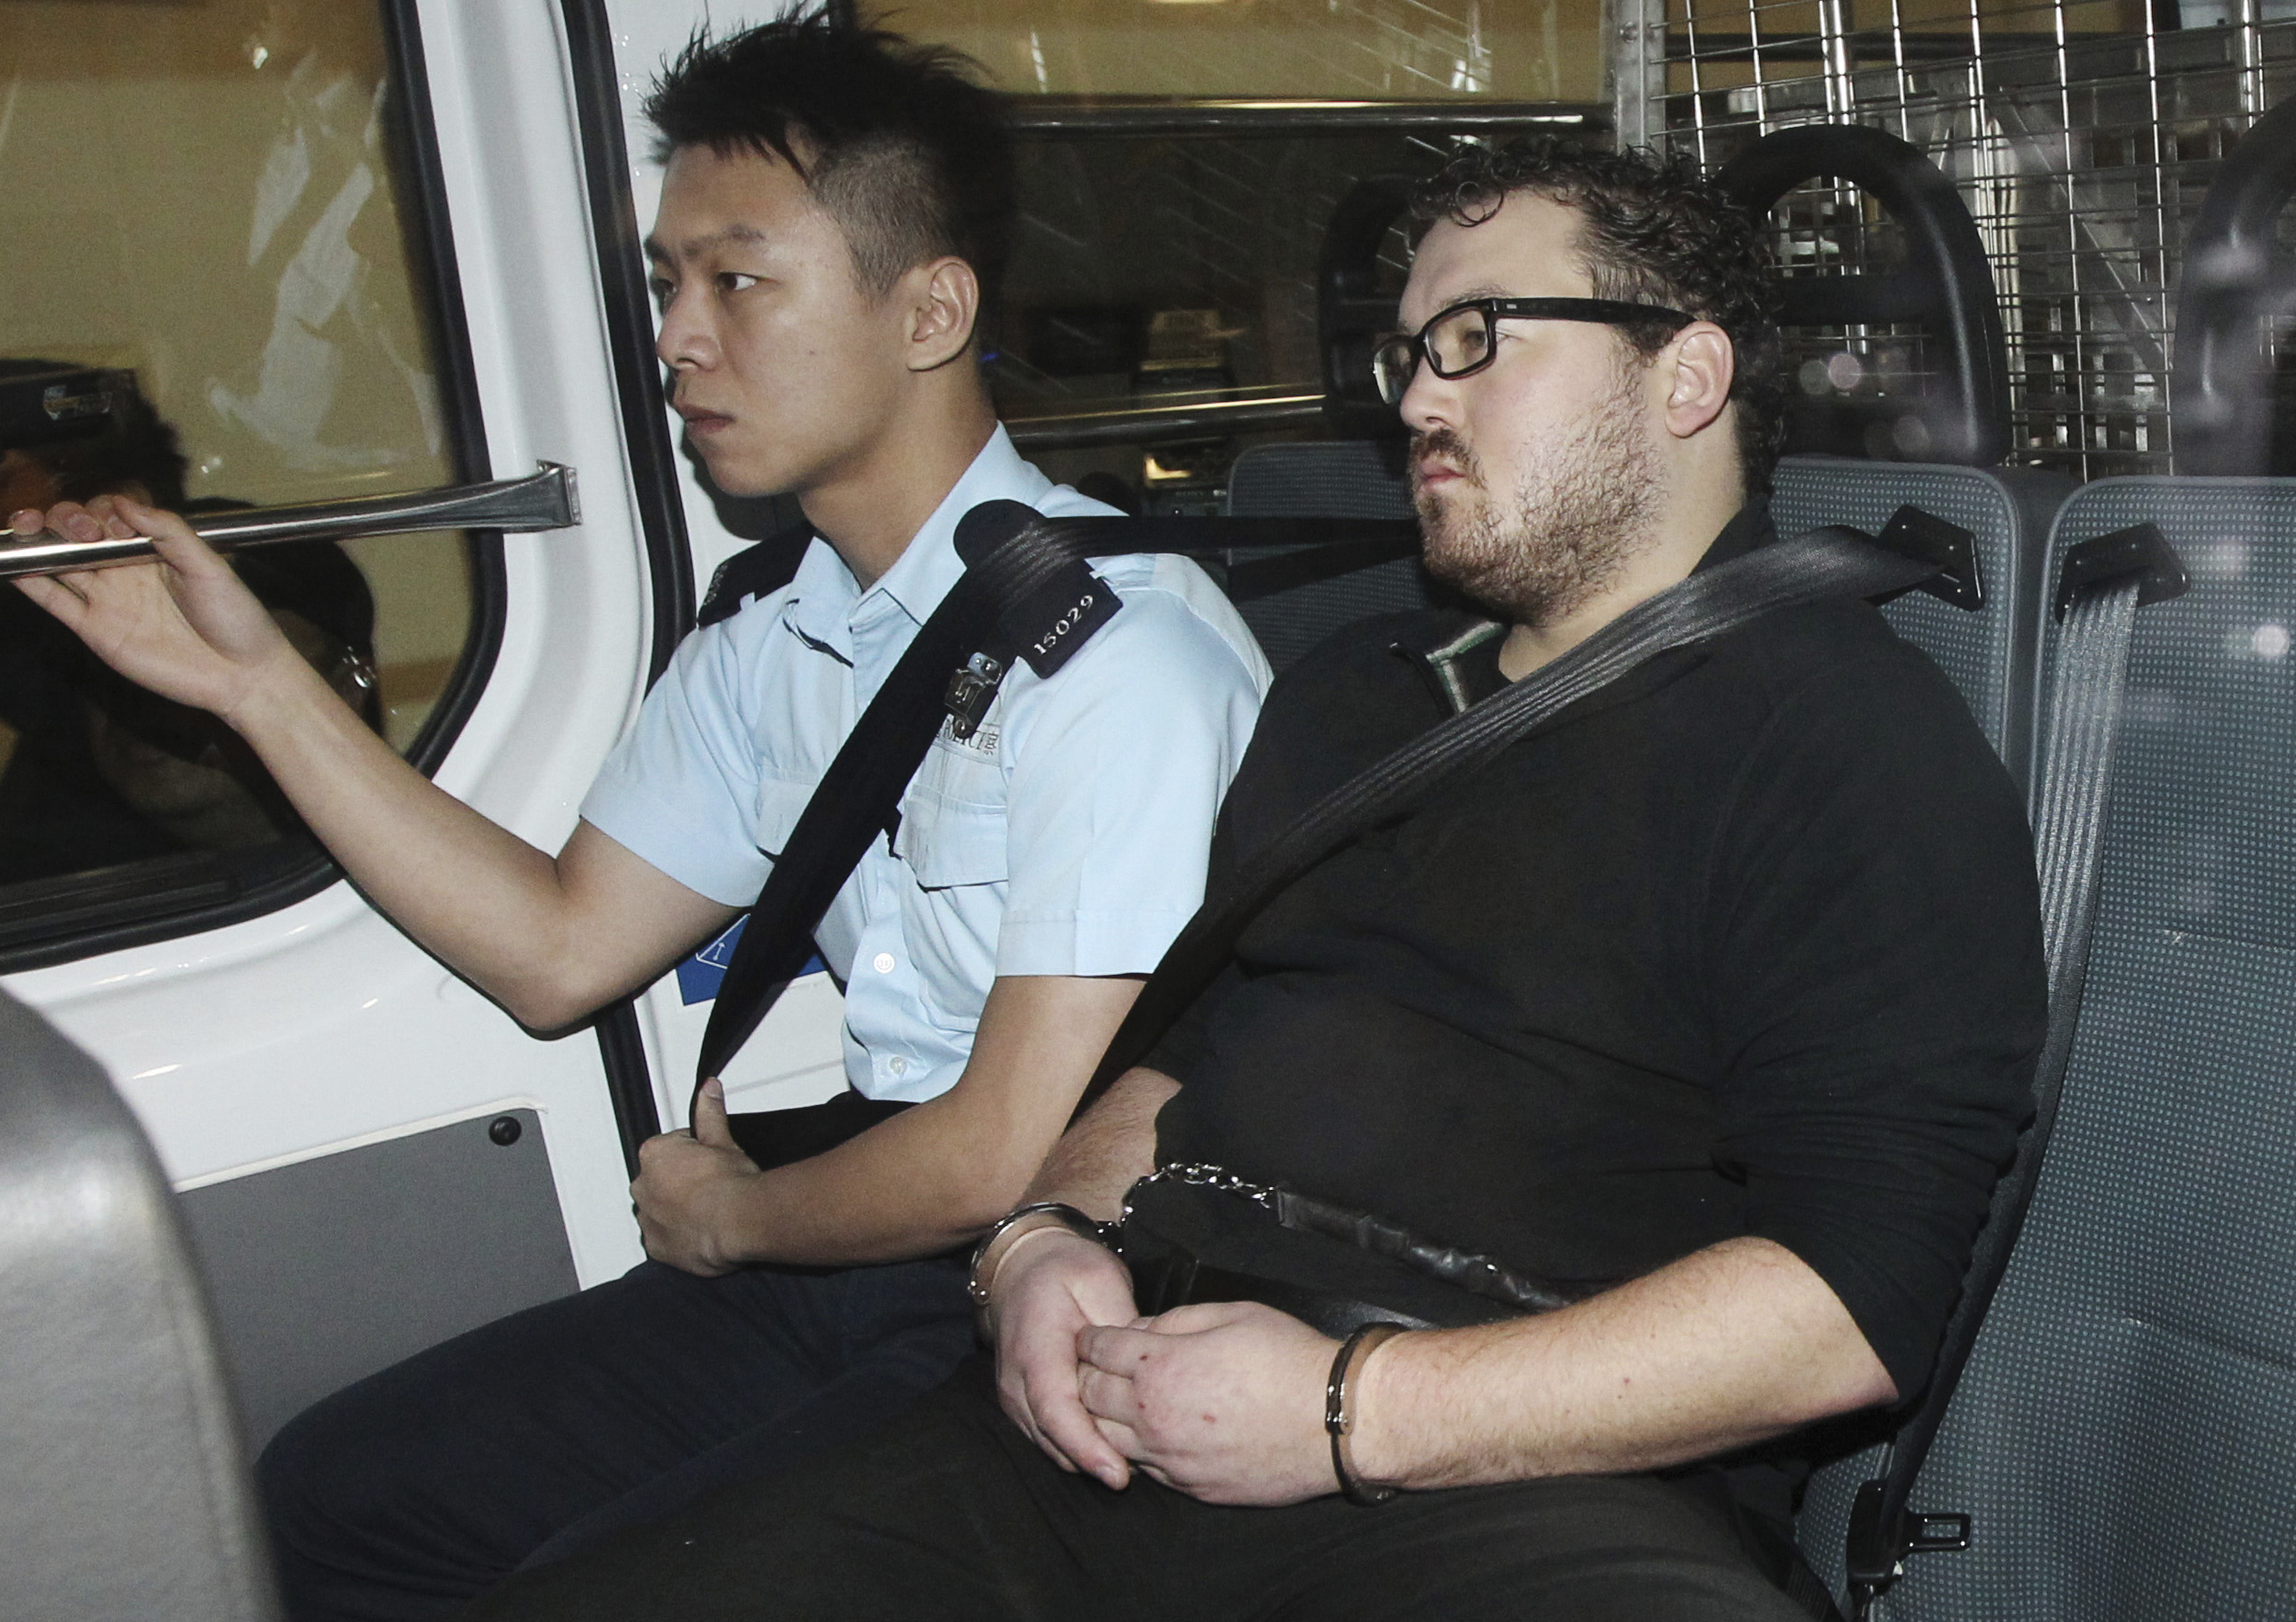 Rurik George Caton Jutting, right, is escorted by a police officer in a police van before appearing in a court in Hong Kong on Nov. 3, 2014